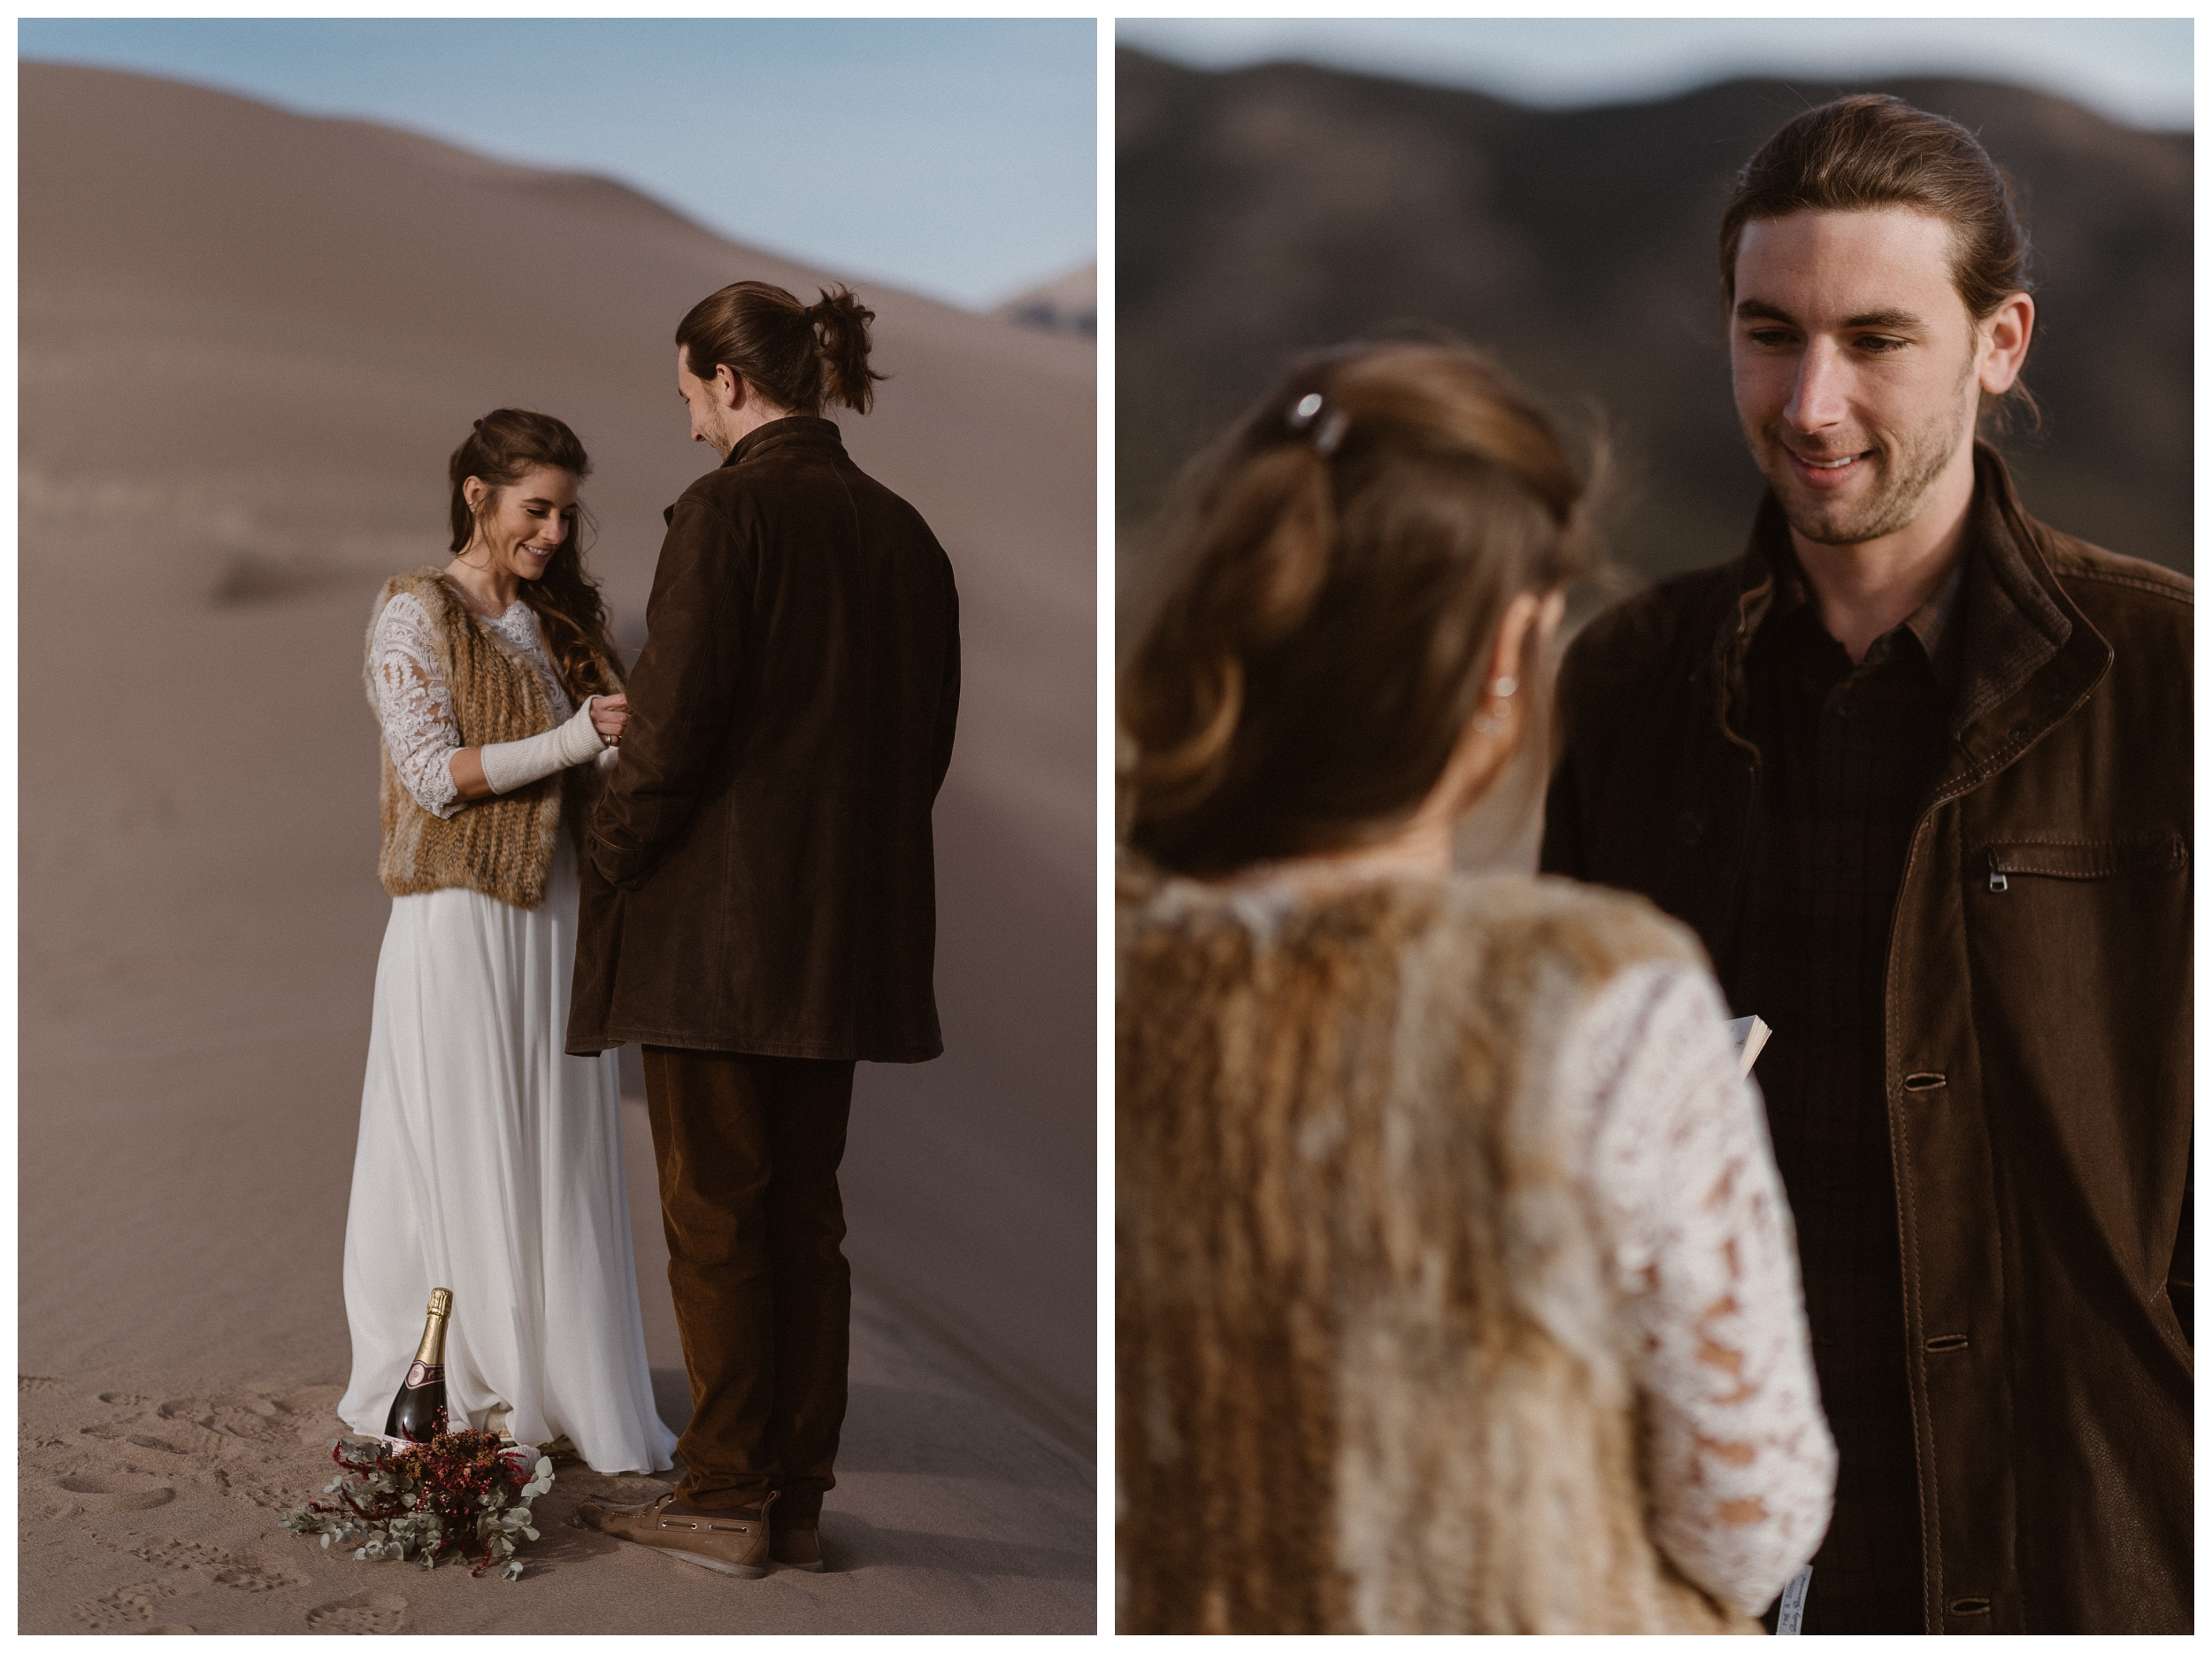 Olivia and Justin read their vows to each other during their self solemnize ceremony at Great Sand Dunes National Park. Photo by Maddie Mae Photo, Adventures Instead.